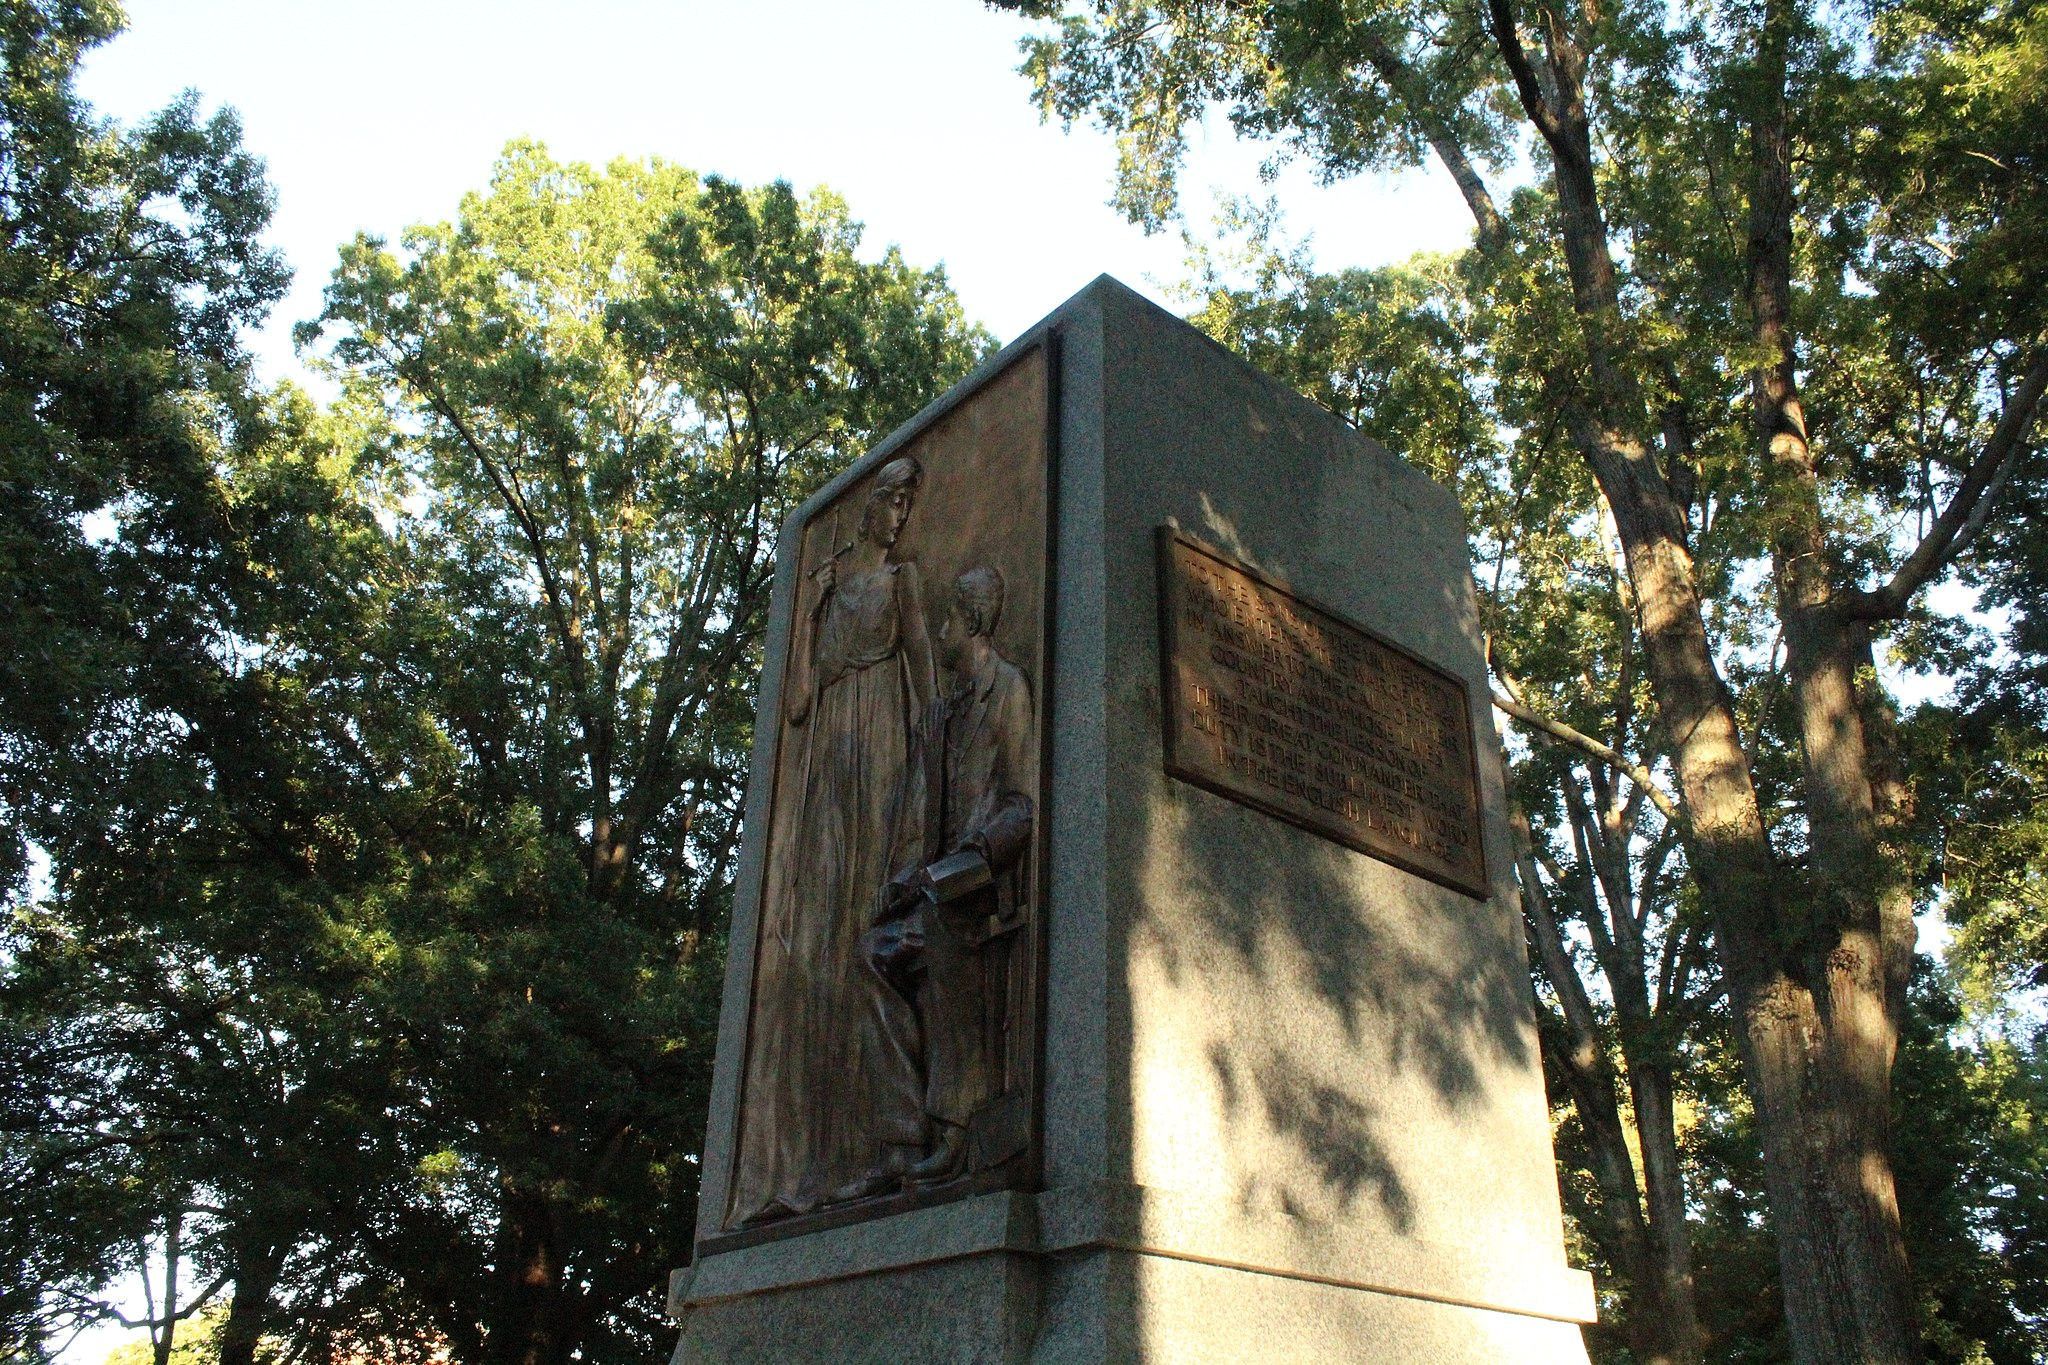 The pedestal of Silent Sam after it was removed on August 20, 2018. Photo by Hameltion via Wikimedia Commons.